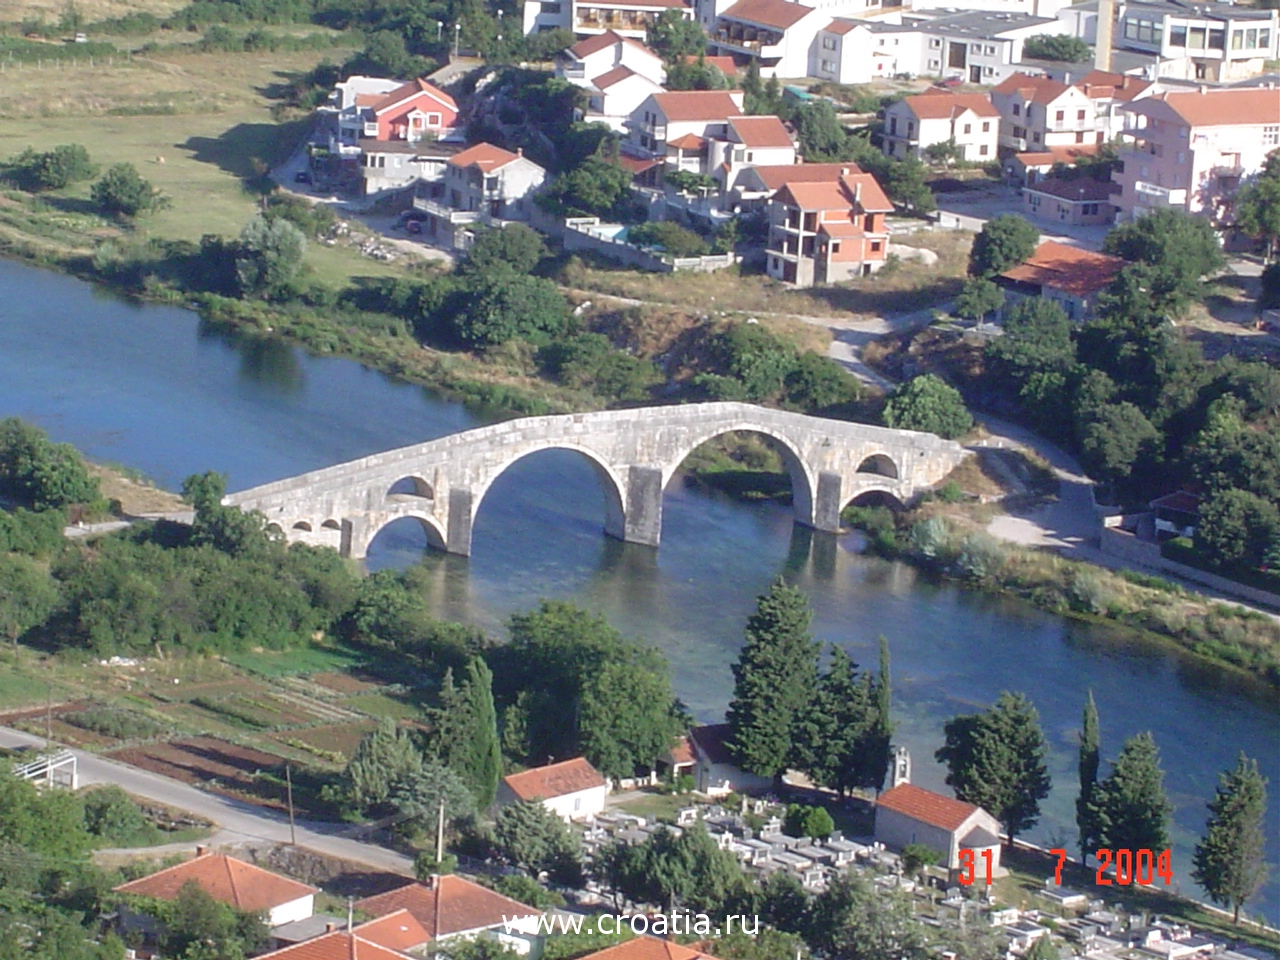 7 Trebinje-Arsl. Most6242496.jpg